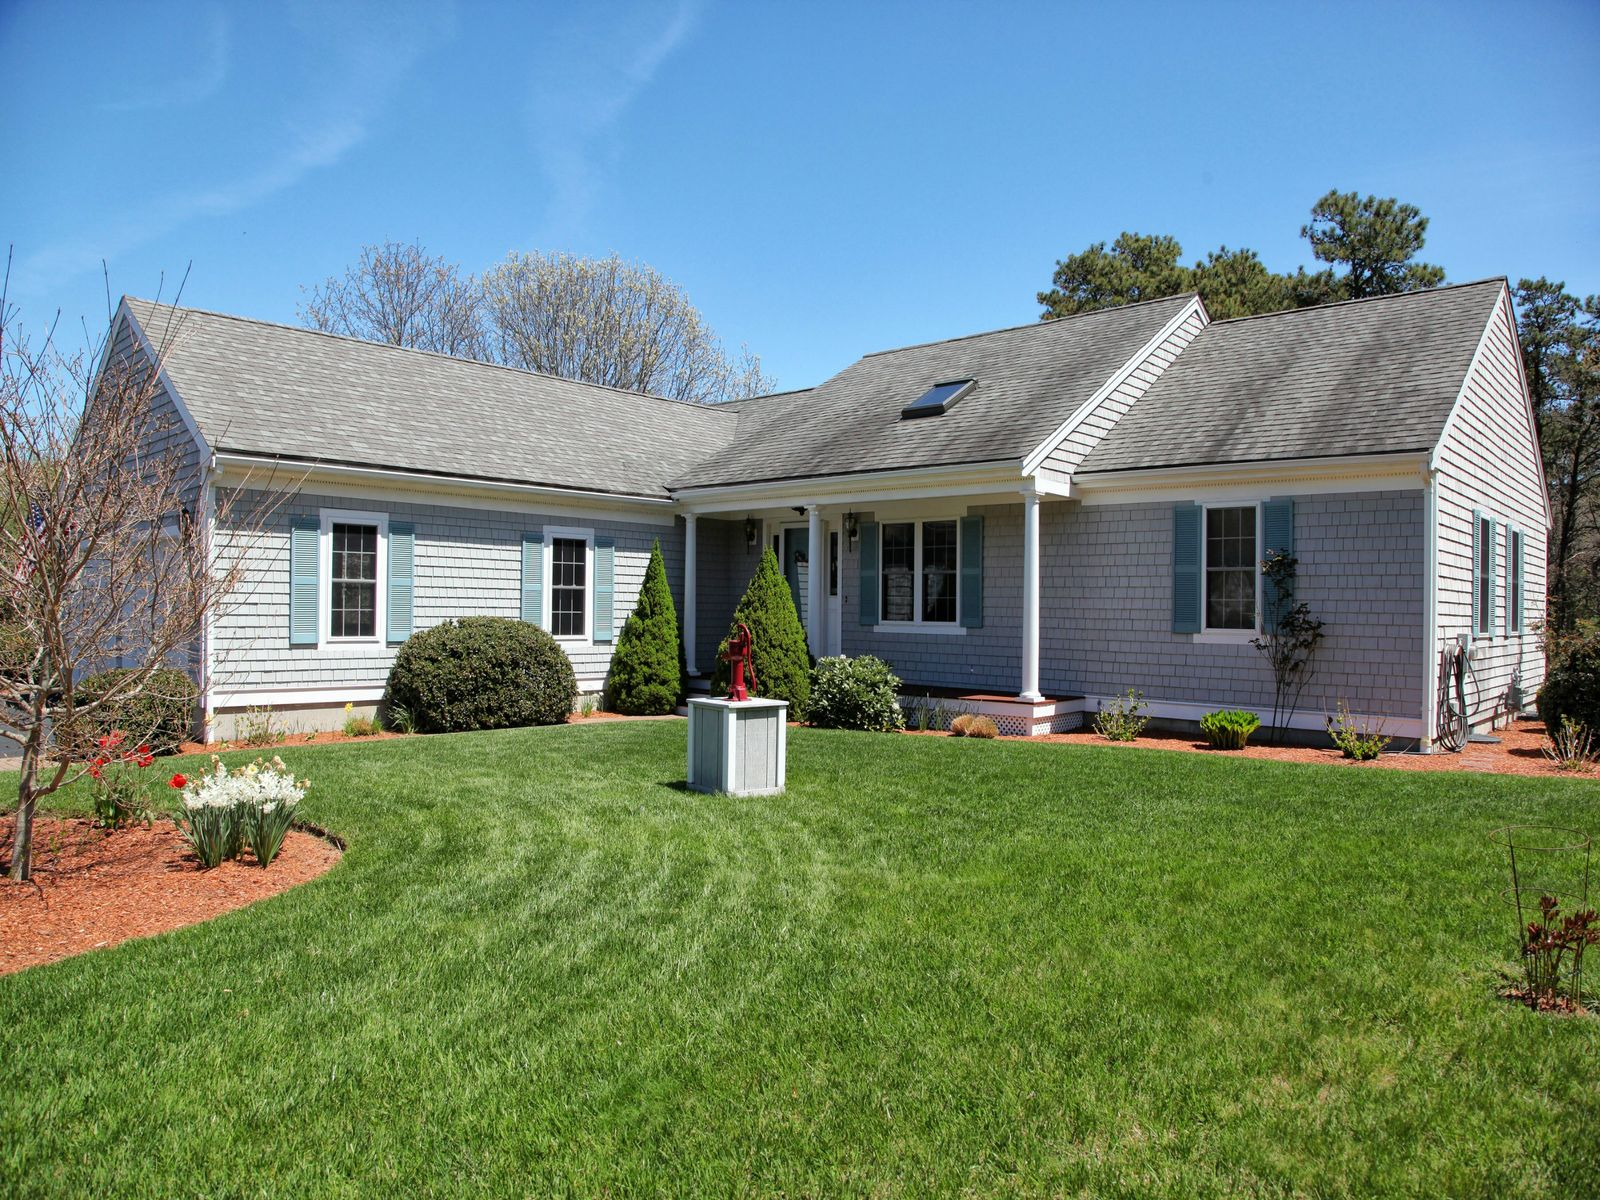 Cape Cod Waterfront Home, East Falmouth MA Single Family Home - Cape Cod Real Estate